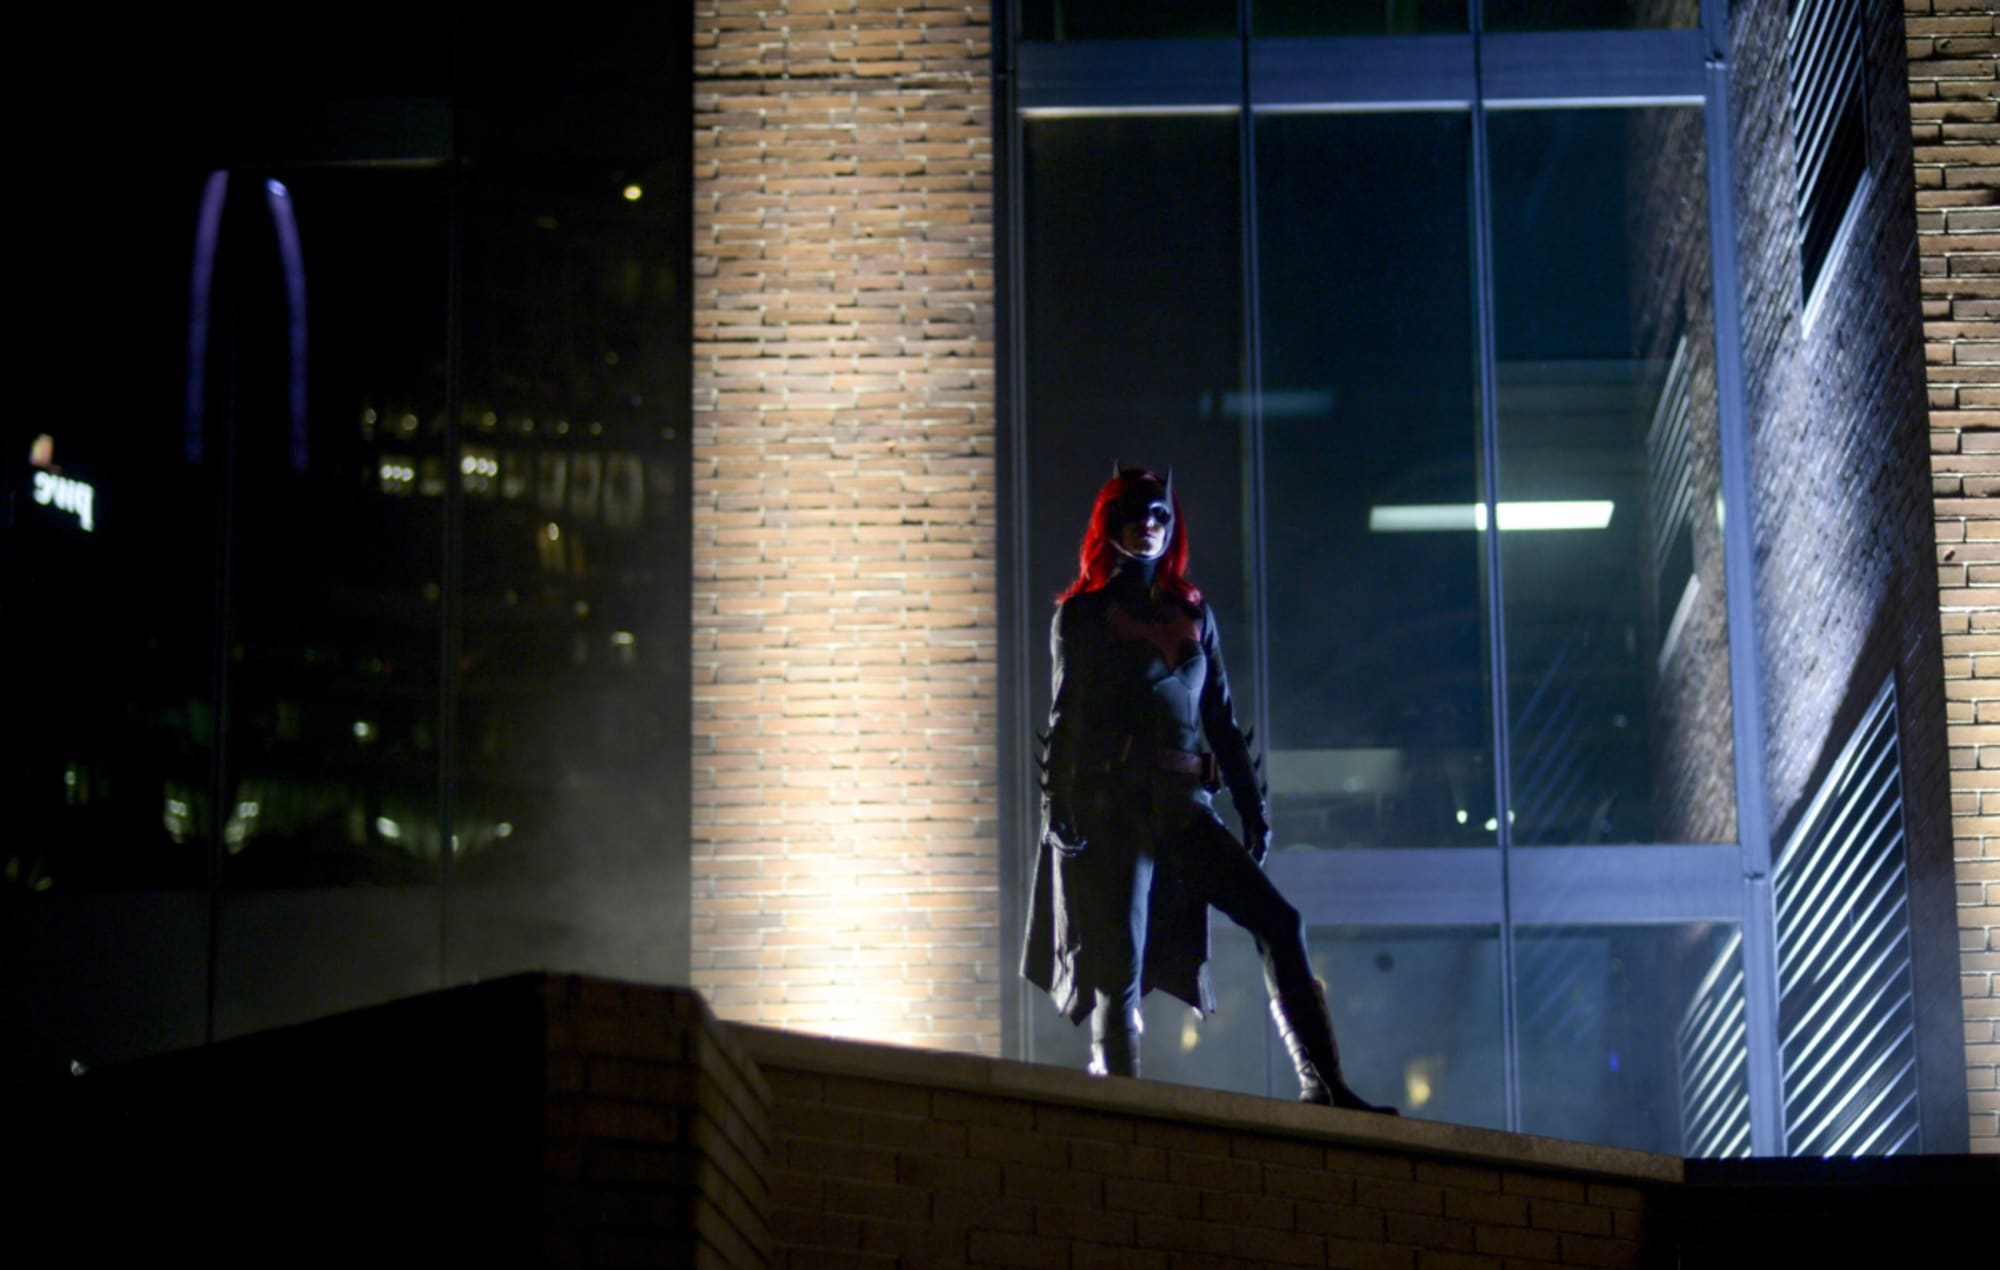 Javicia Leslie suits up as the new Scarlet Knight in Batwoman season 2 teaser